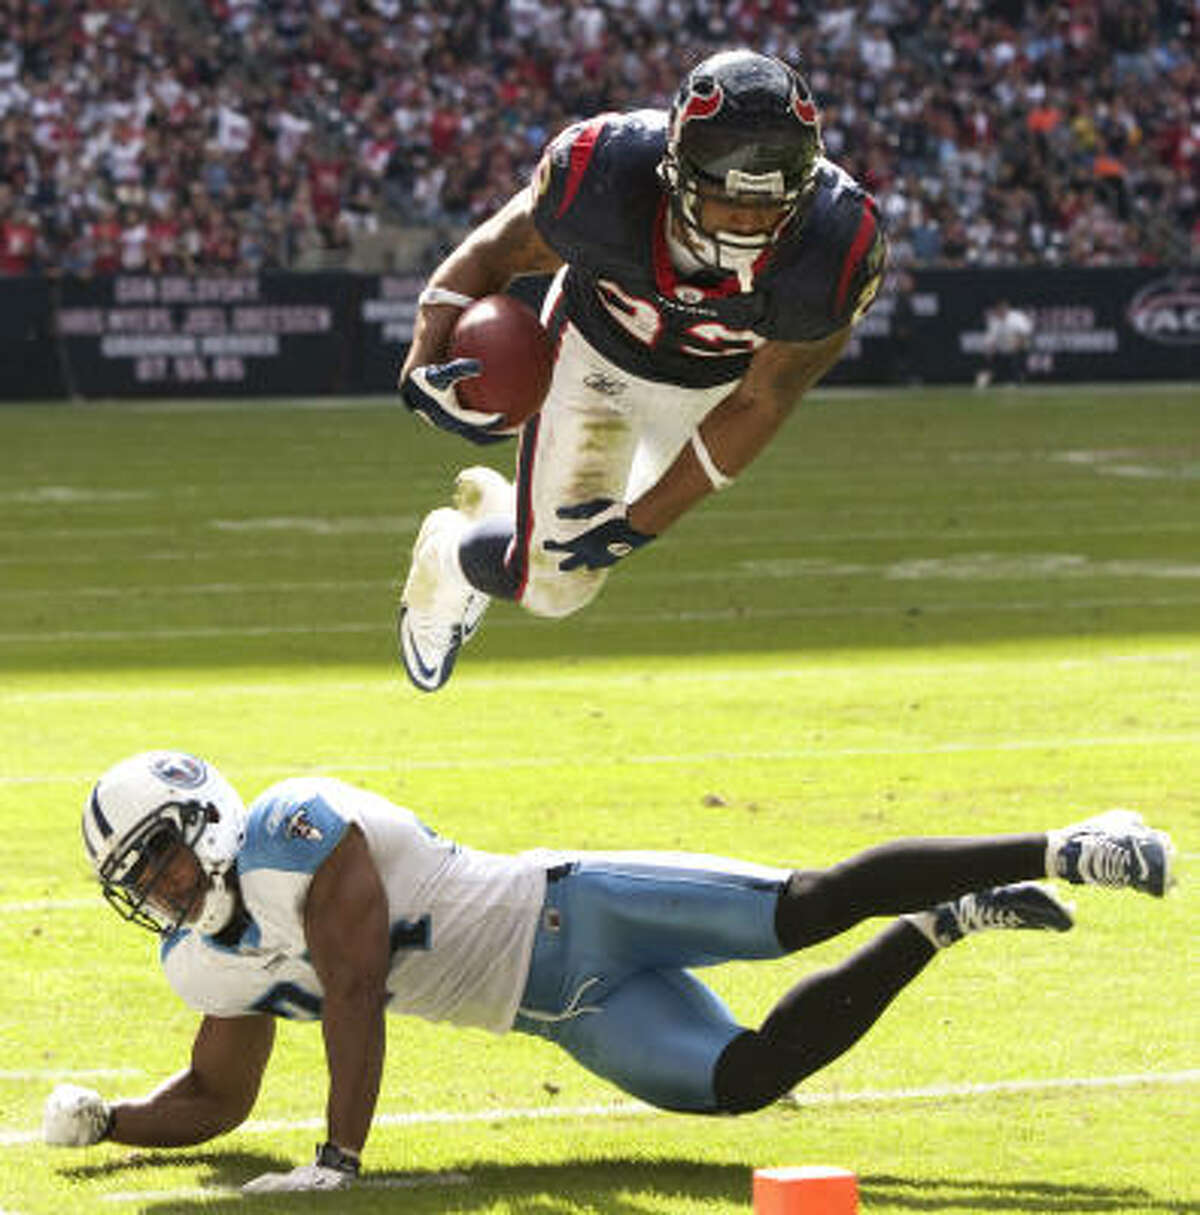 Arian Foster Position: Running back Rushing yards: 1,616